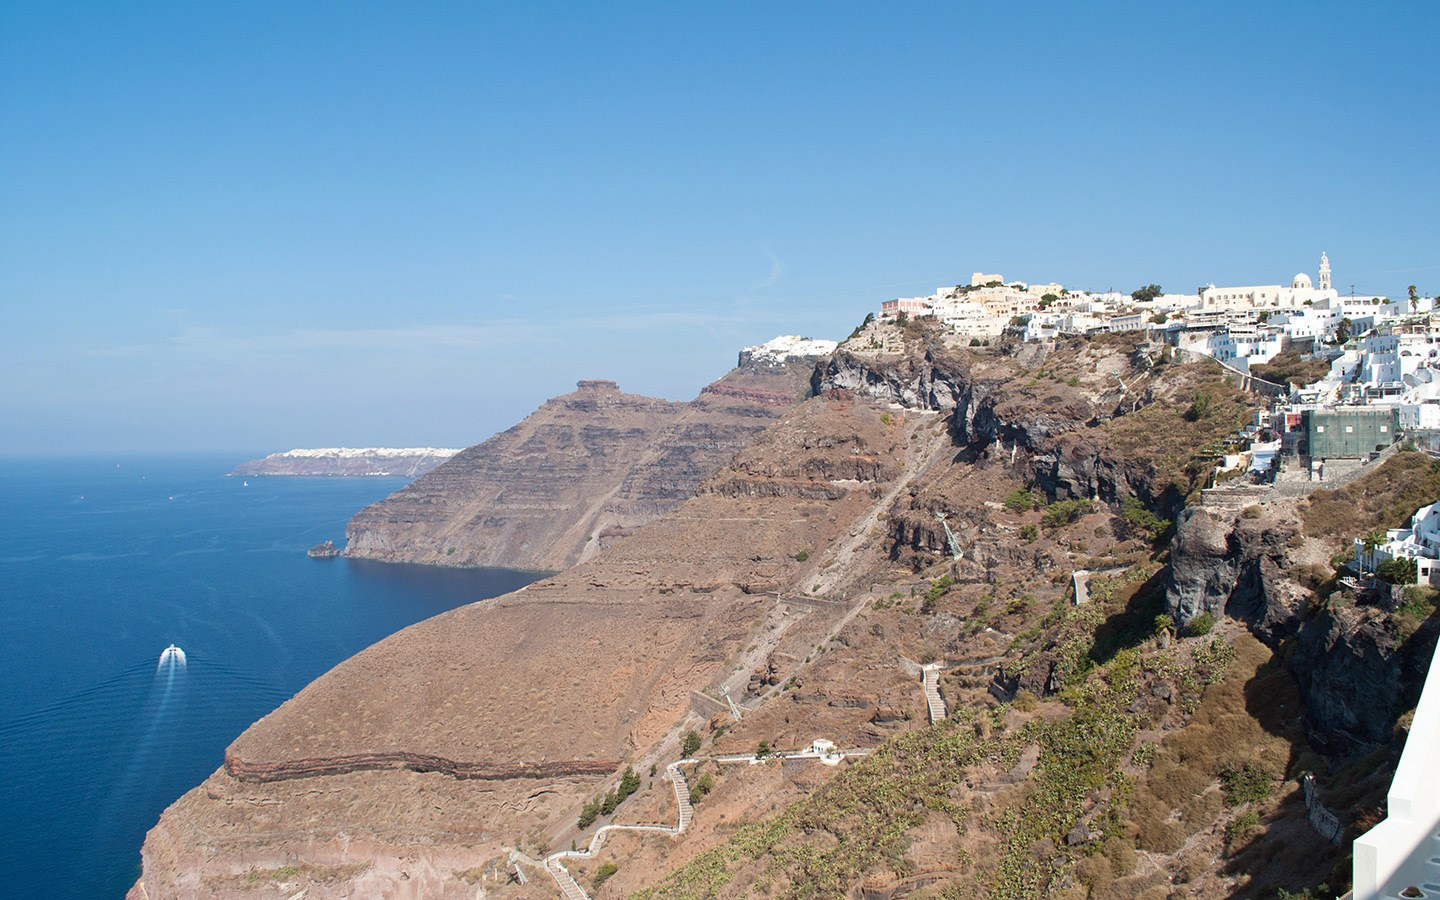 Caldera views in Fira Santorini